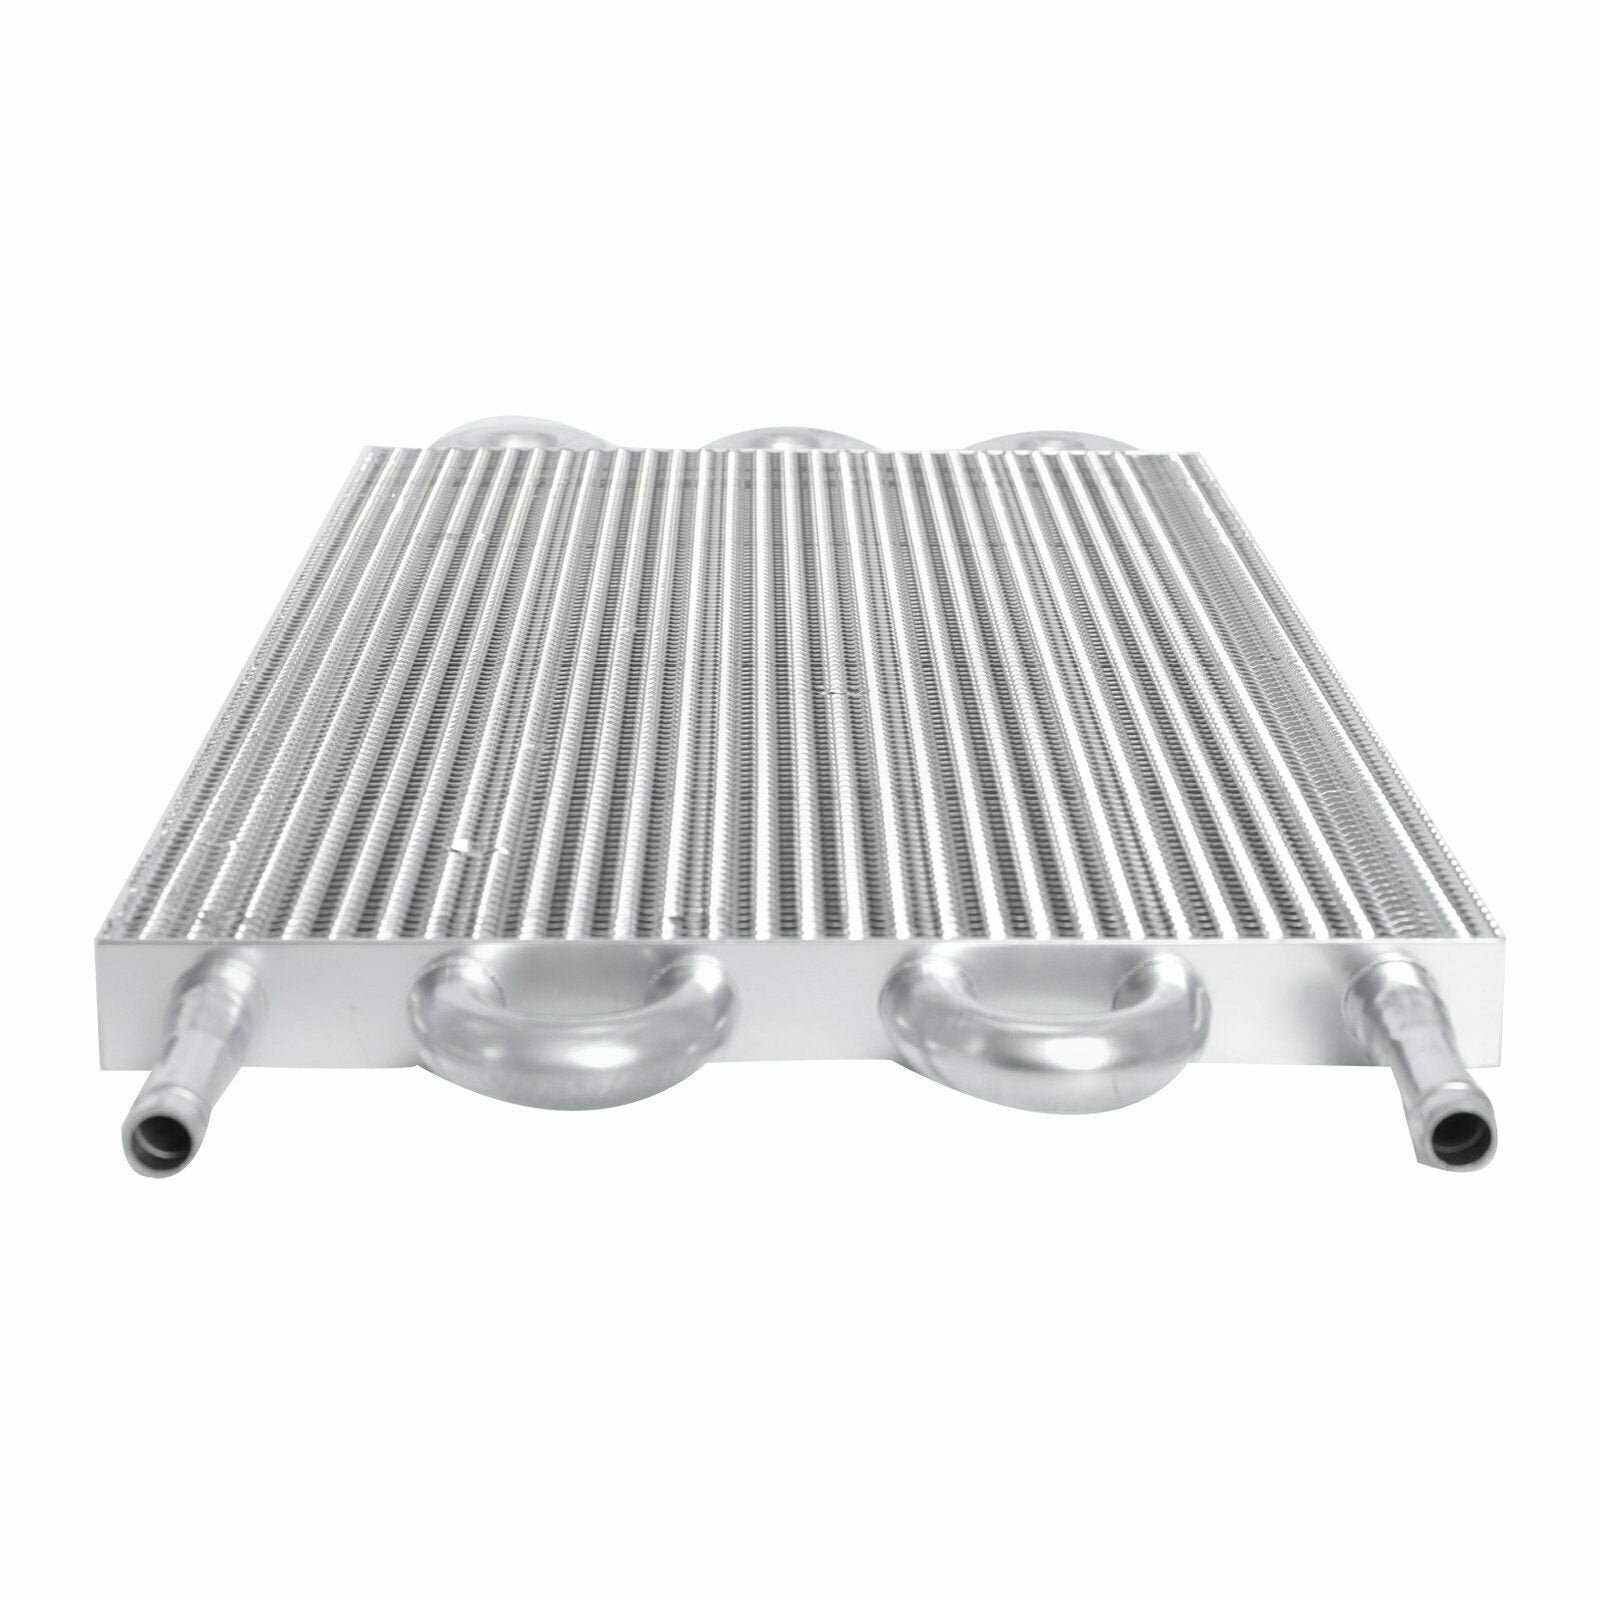 "6 Row Wide Tube Fin Aluminum Light Duty Engine Transmission Oil Cooler 6"" Inch Electric Fan Kit-Oil Cooler-American Volt-American Volt"